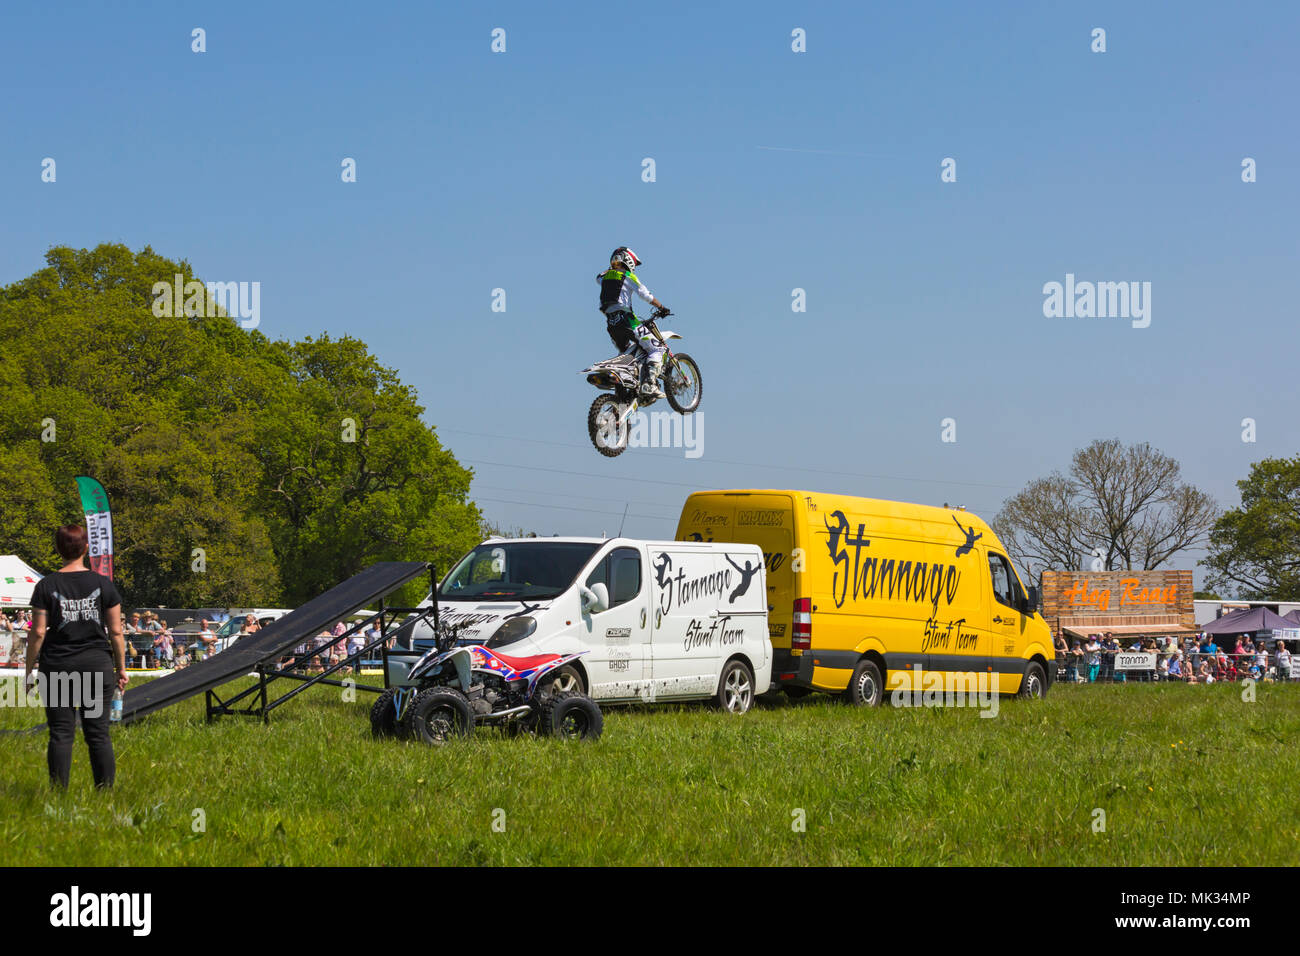 Netley Marsh, Hampshire, UK. 6th May 2018. The first day, of the two day event, Hampshire Game & Country Fair attracts the crowds. Stannage International Stunt Display Team thrill the crowds. - Stock Image